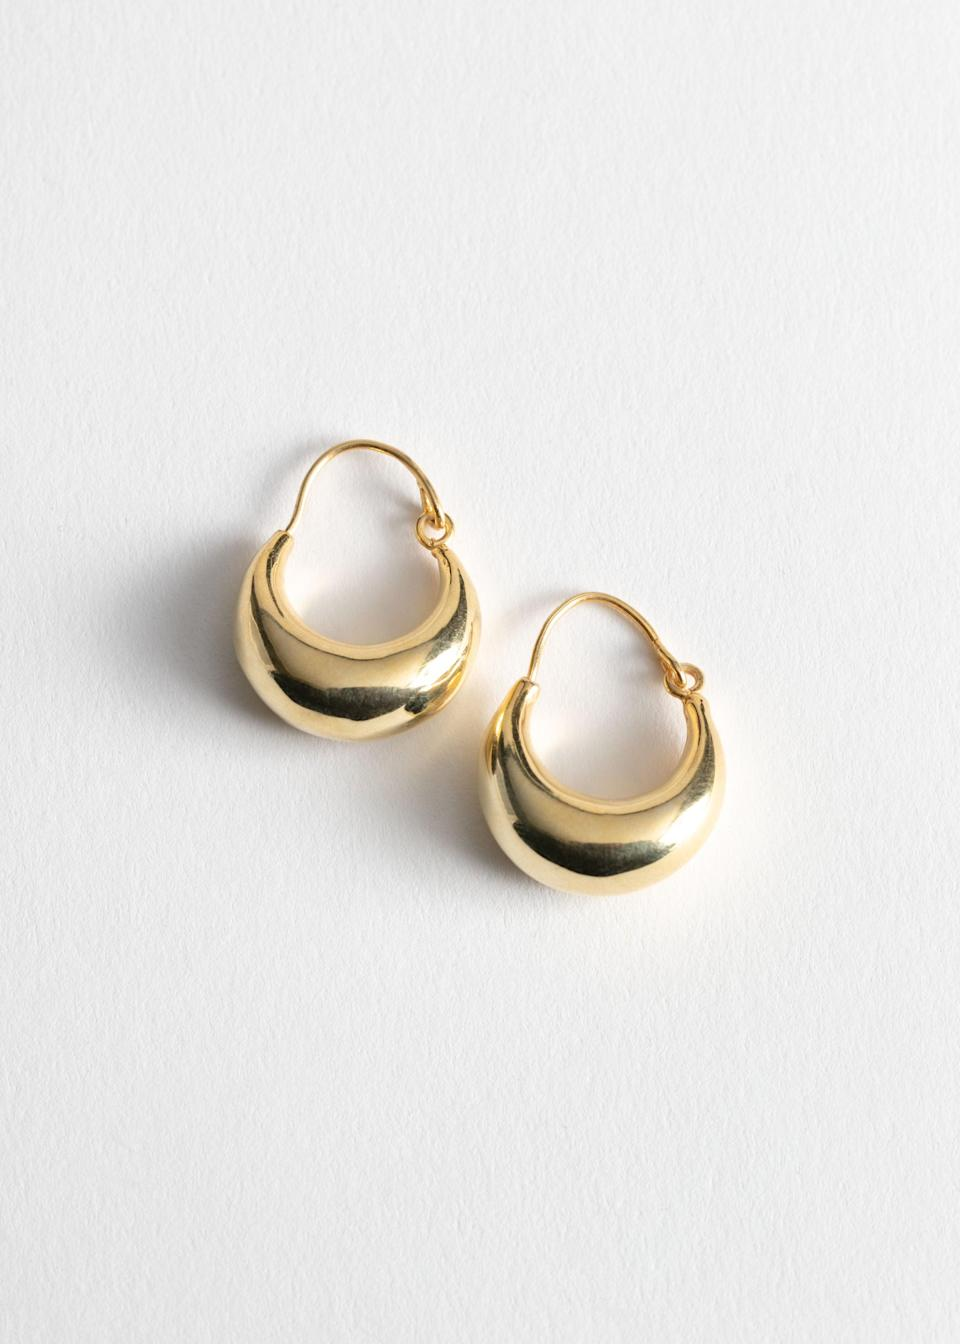 "<br><br><strong>& Other Stories</strong> Droplet Hoop Earrings, $, available at <a href=""https://go.skimresources.com/?id=30283X879131&url=https%3A%2F%2Fwww.stories.com%2Fen_usd%2Fjewellery%2Fearrings%2Fhoops%2Fproduct.droplet-hoop-earrings-gold.0770931001.html"" rel=""nofollow noopener"" target=""_blank"" data-ylk=""slk:& Other Stories"" class=""link rapid-noclick-resp"">& Other Stories</a>"